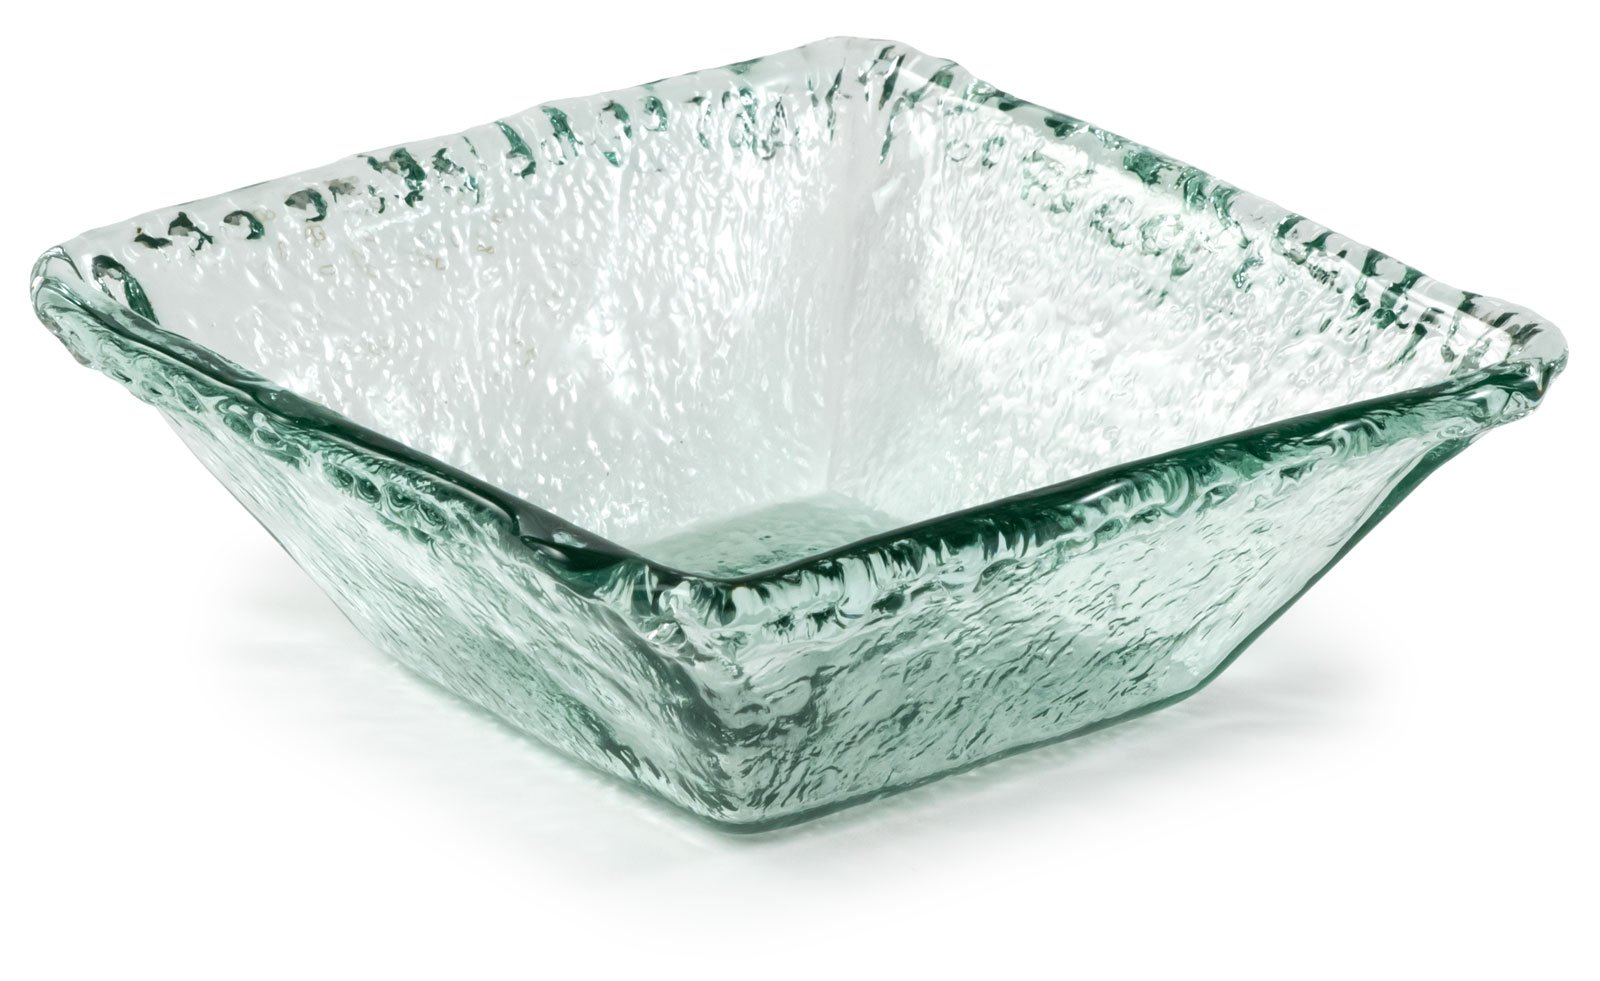 100% Recycled Glass Textured Medium Square - 8.5''Lx8.5''Wx3.25''H